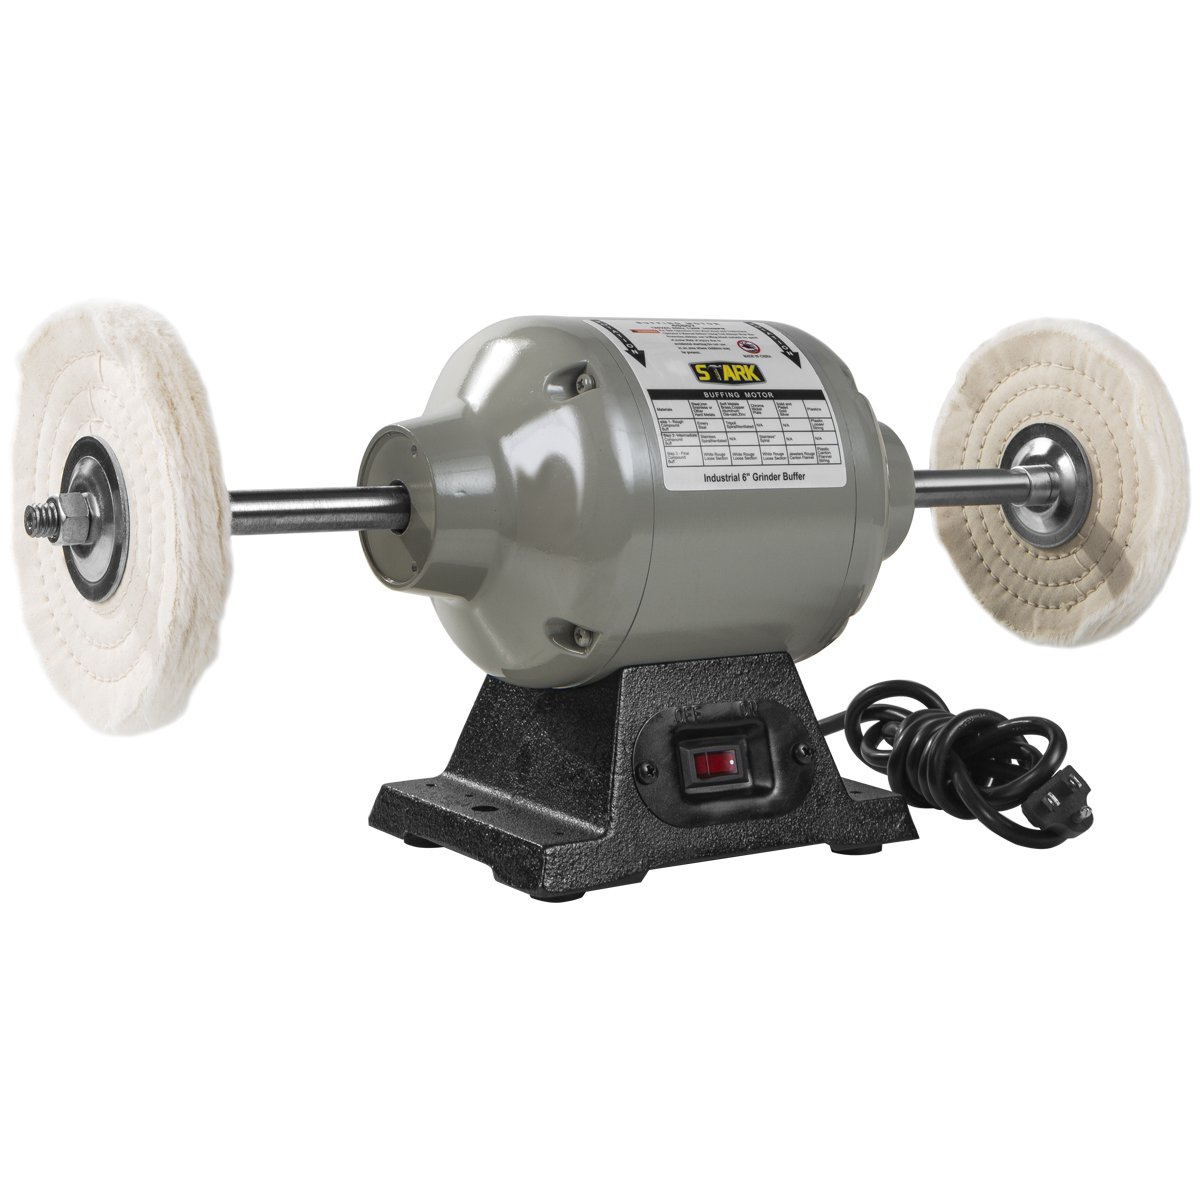 XtremepowerUS 6 inch Benchtop Buffer Polisher Grinder Heavy Duty 2.5 Amps 3 450rpm 1 2 HP